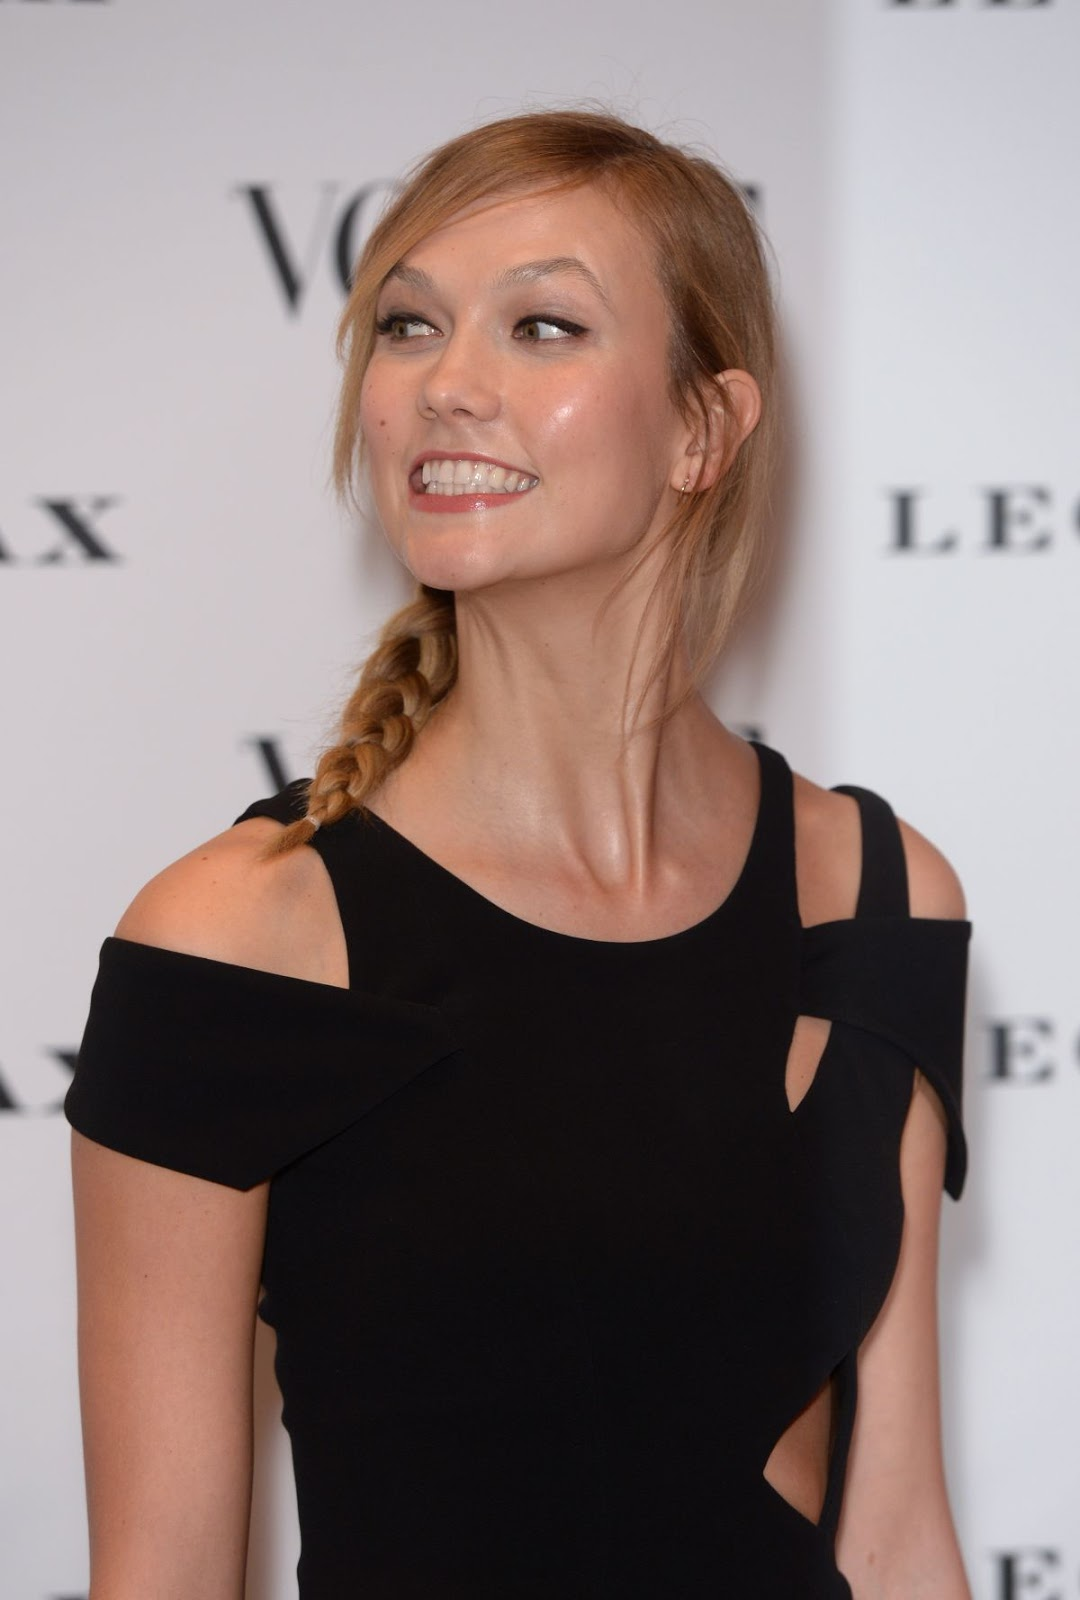 Vogue 100 - Karlie Kloss attends A Century of Style Fashion Exhibition in London